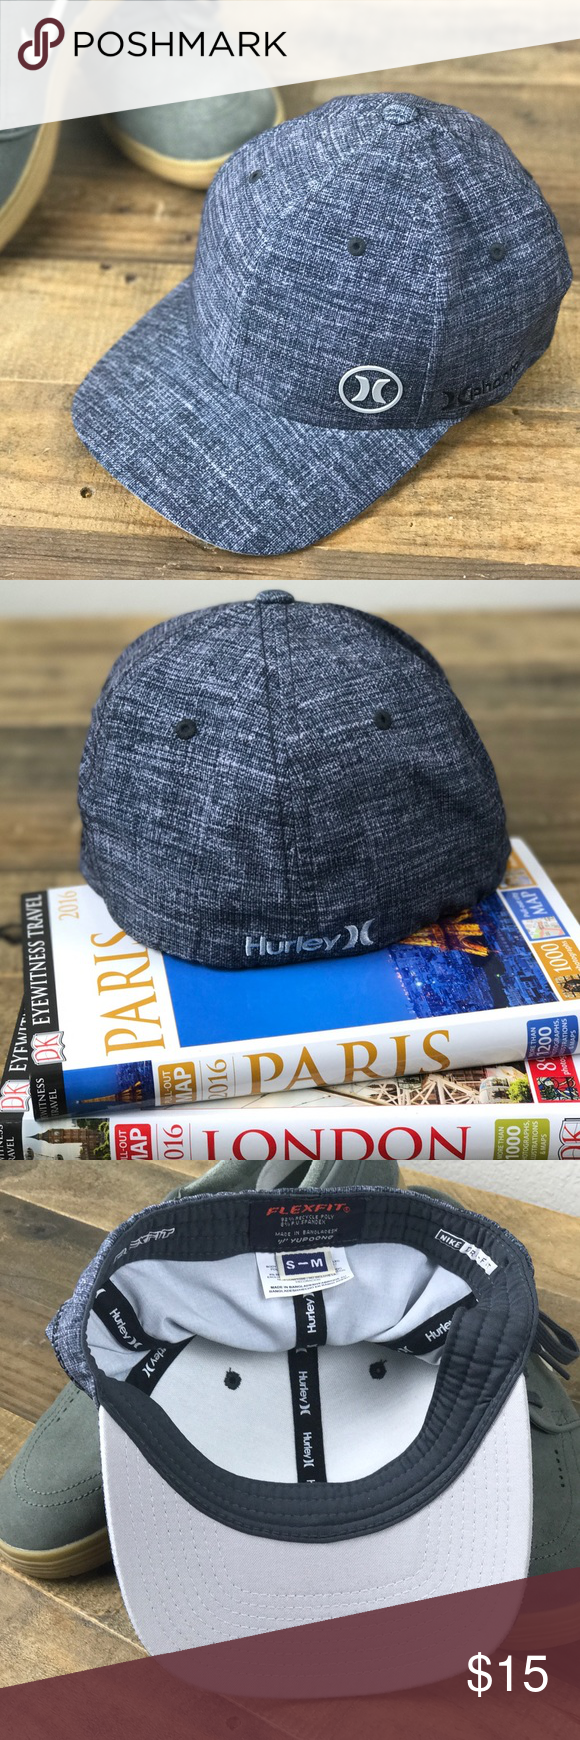 ... discount code for hurly phantom bp hat perfect condition hurley phantom  bp hat with nike flexfit 93a70e9a4394